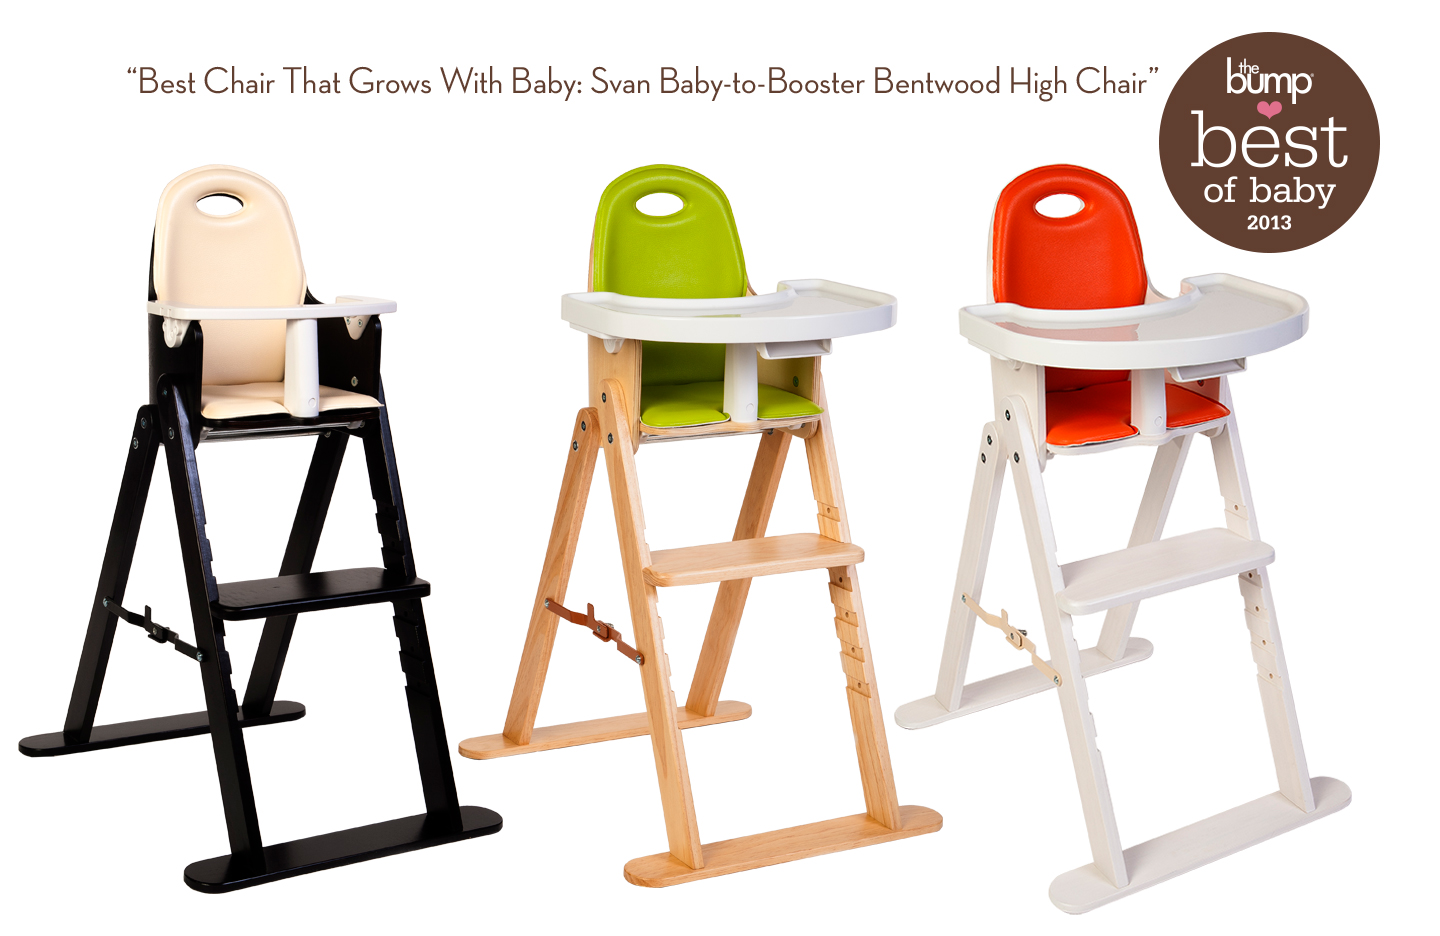 Astonishing Baby To Booster Bentwood High Chair By Svan Gmtry Best Dining Table And Chair Ideas Images Gmtryco